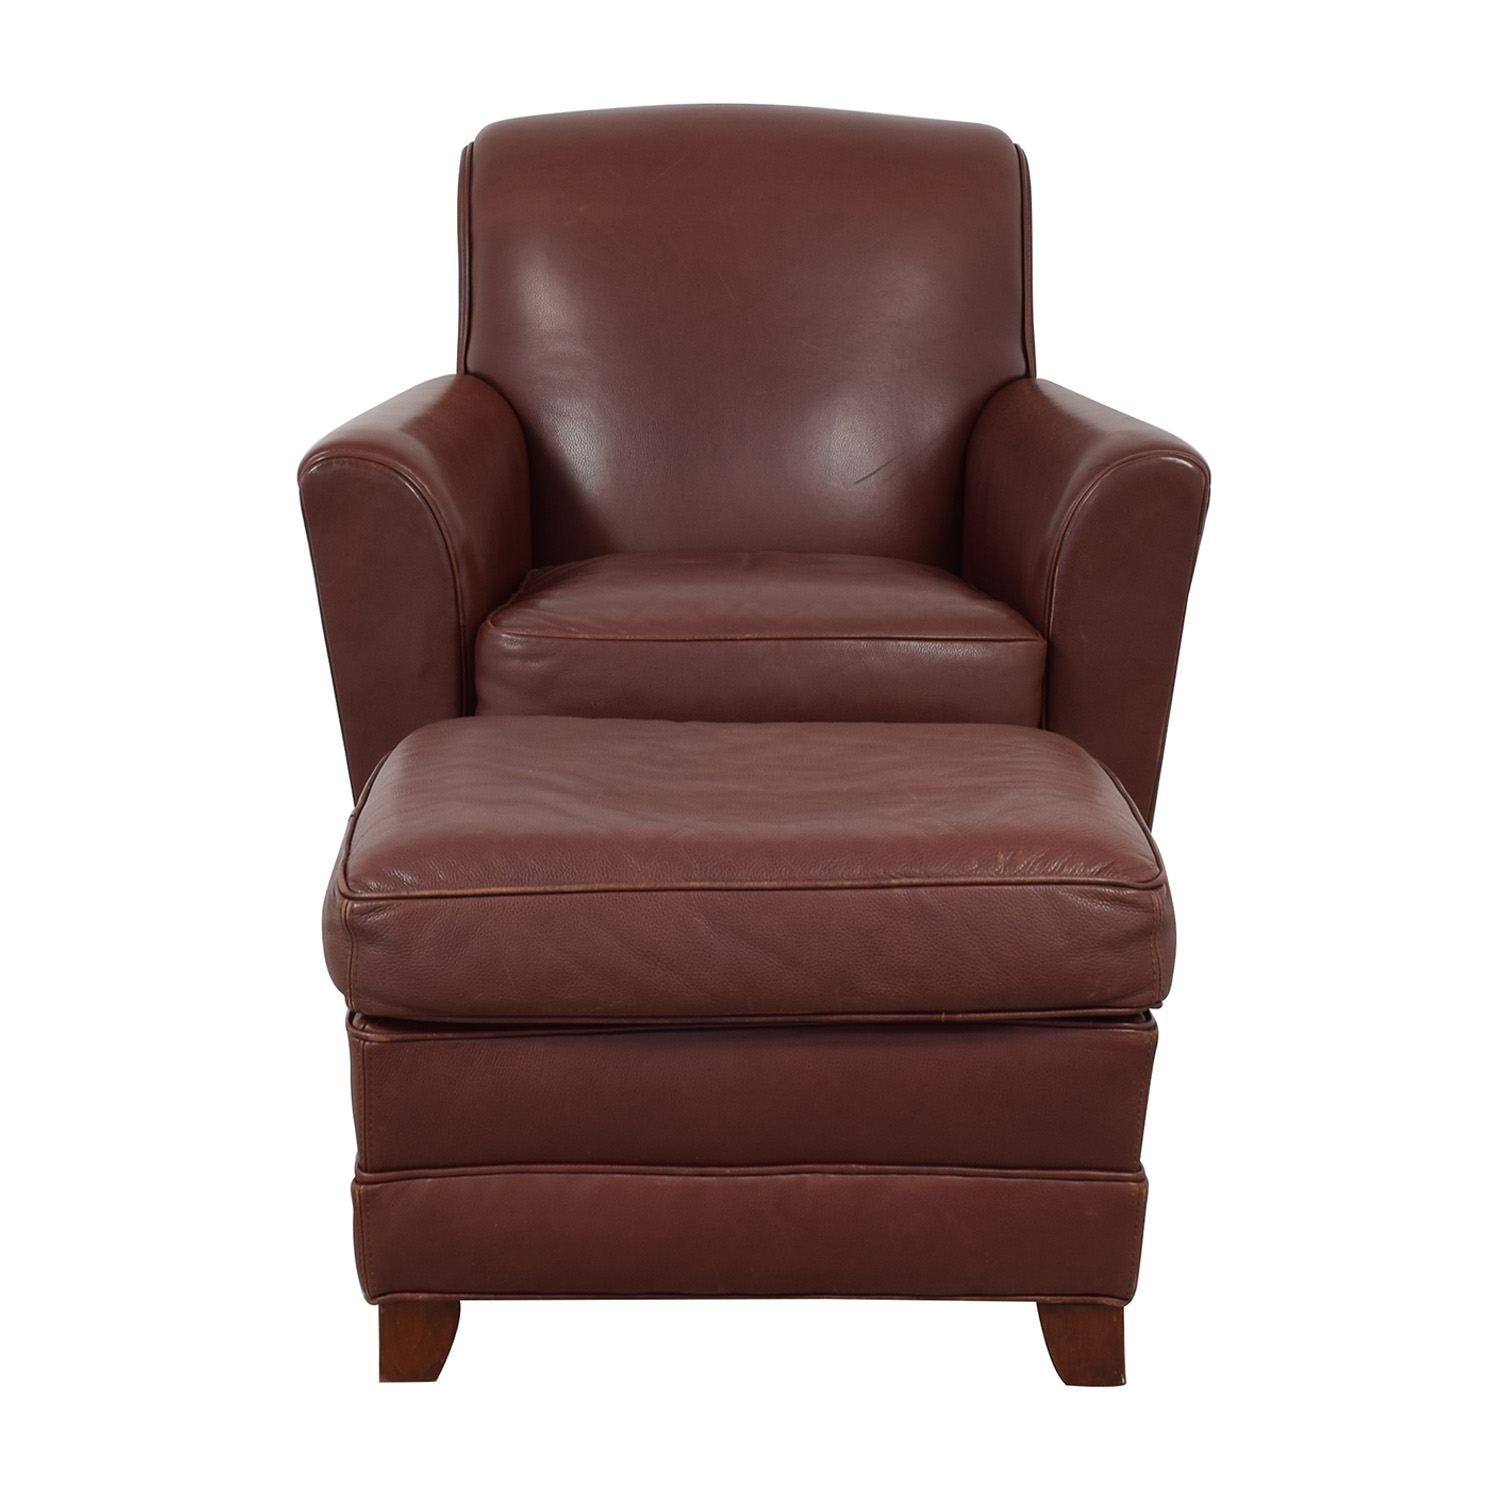 75 Off Stickley Furniture Stickley Furniture Leather Club Chair